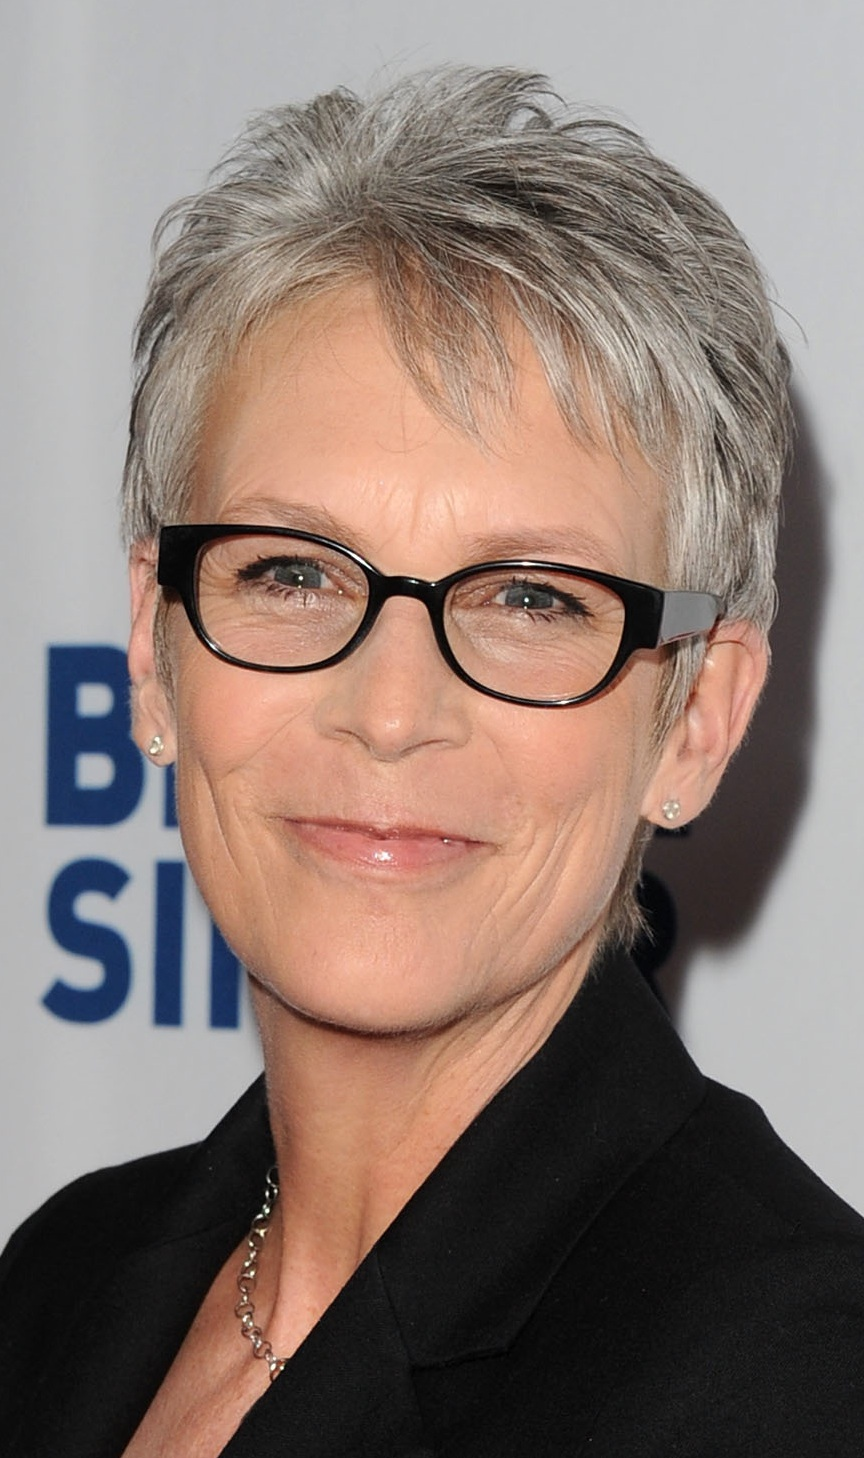 Jamie Lee Curtis - New Girl Wiki